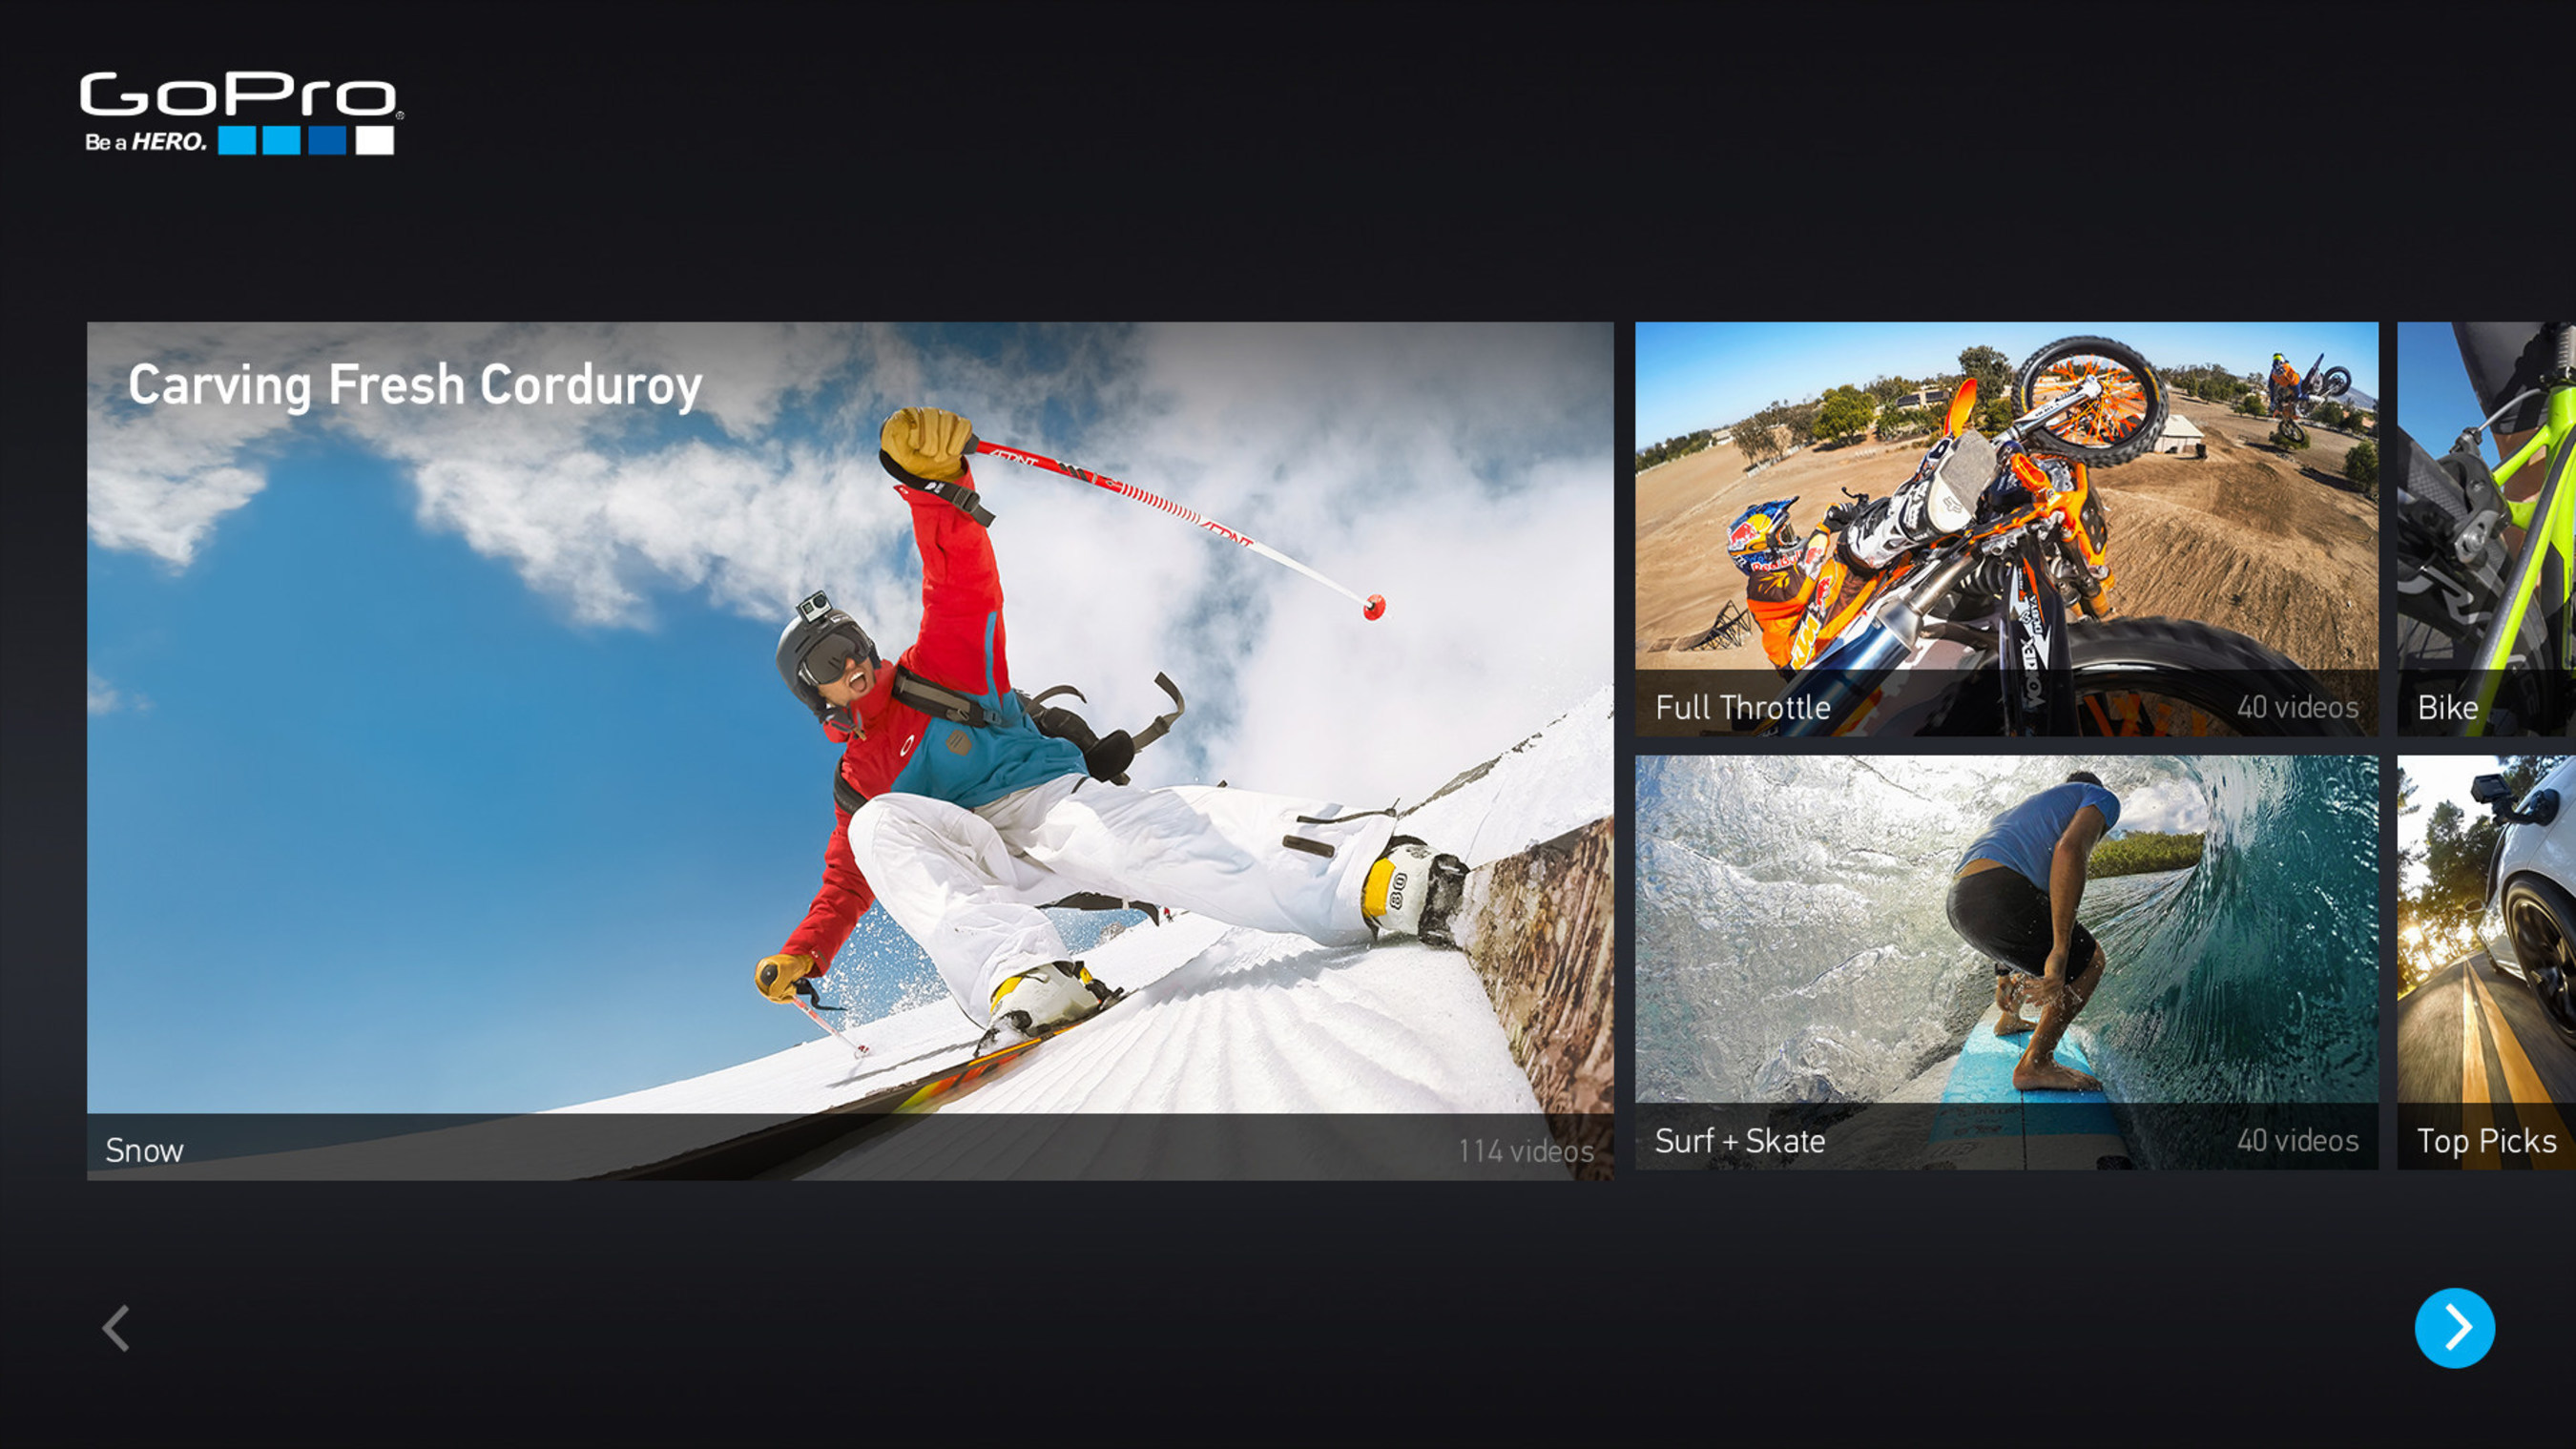 GoPro App Brings A New Channel to the LG Smart TV Platform